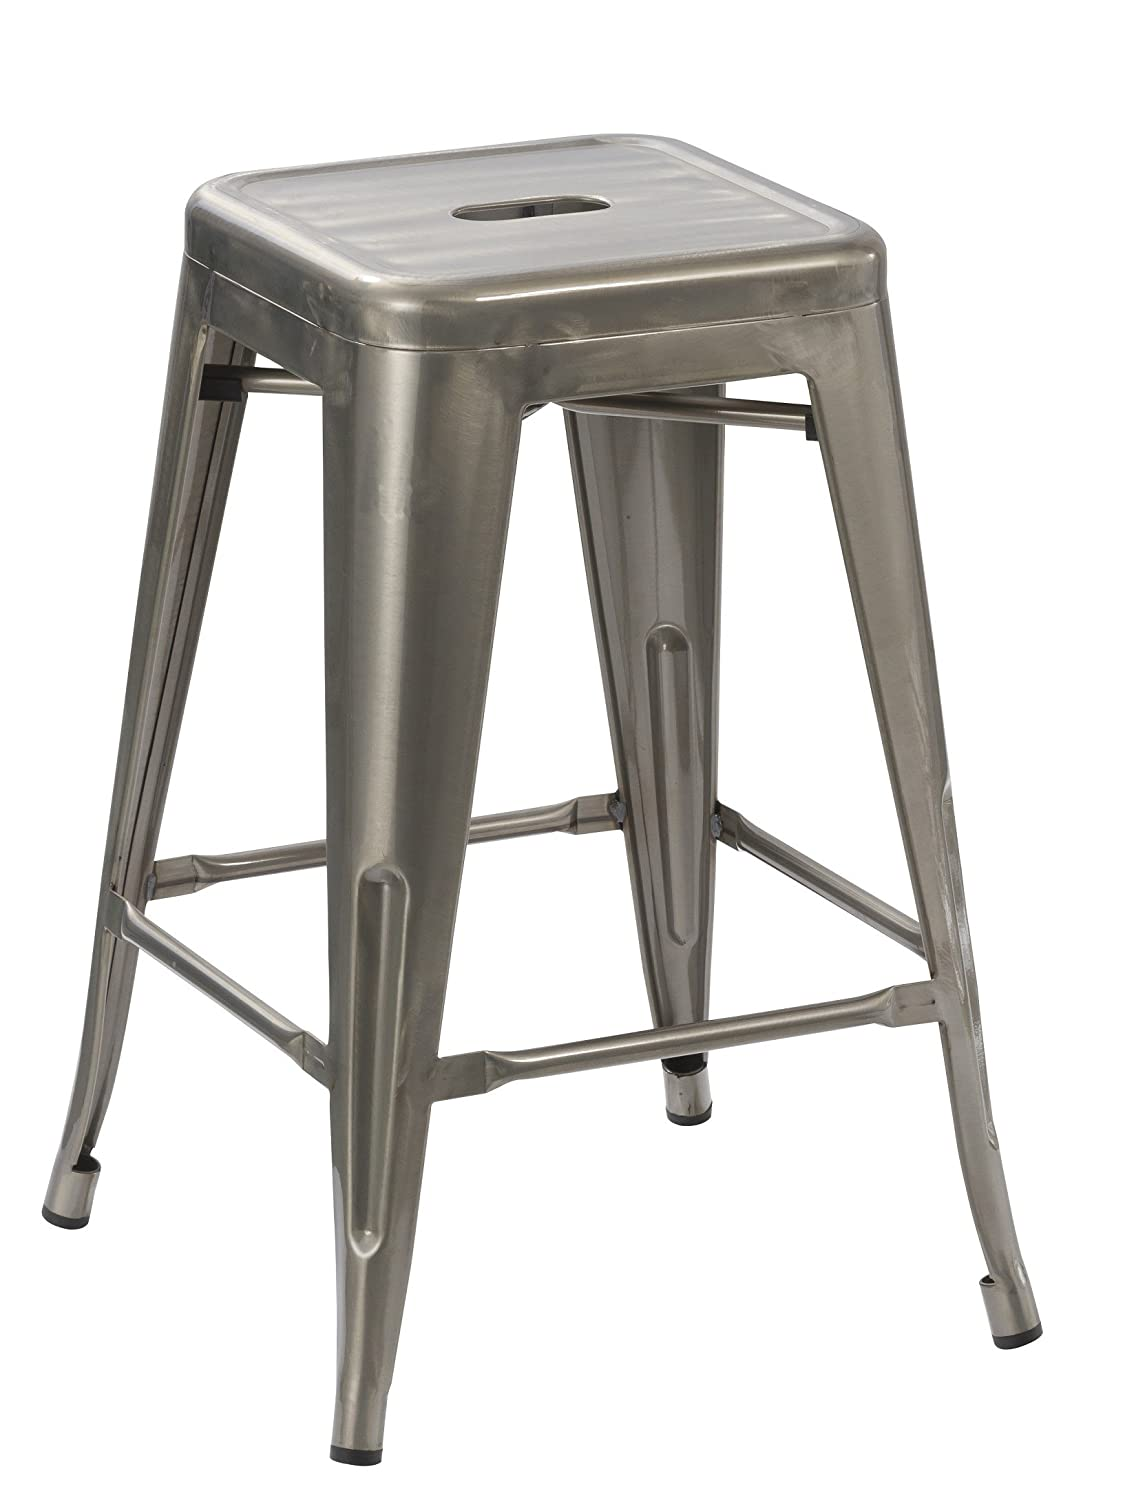 BTEXPERT 24-inch Industrial Tabouret Vintage Antique Rustic Style Distressed Metal Brush Modern Dining Counter Bar Stool – Barstool